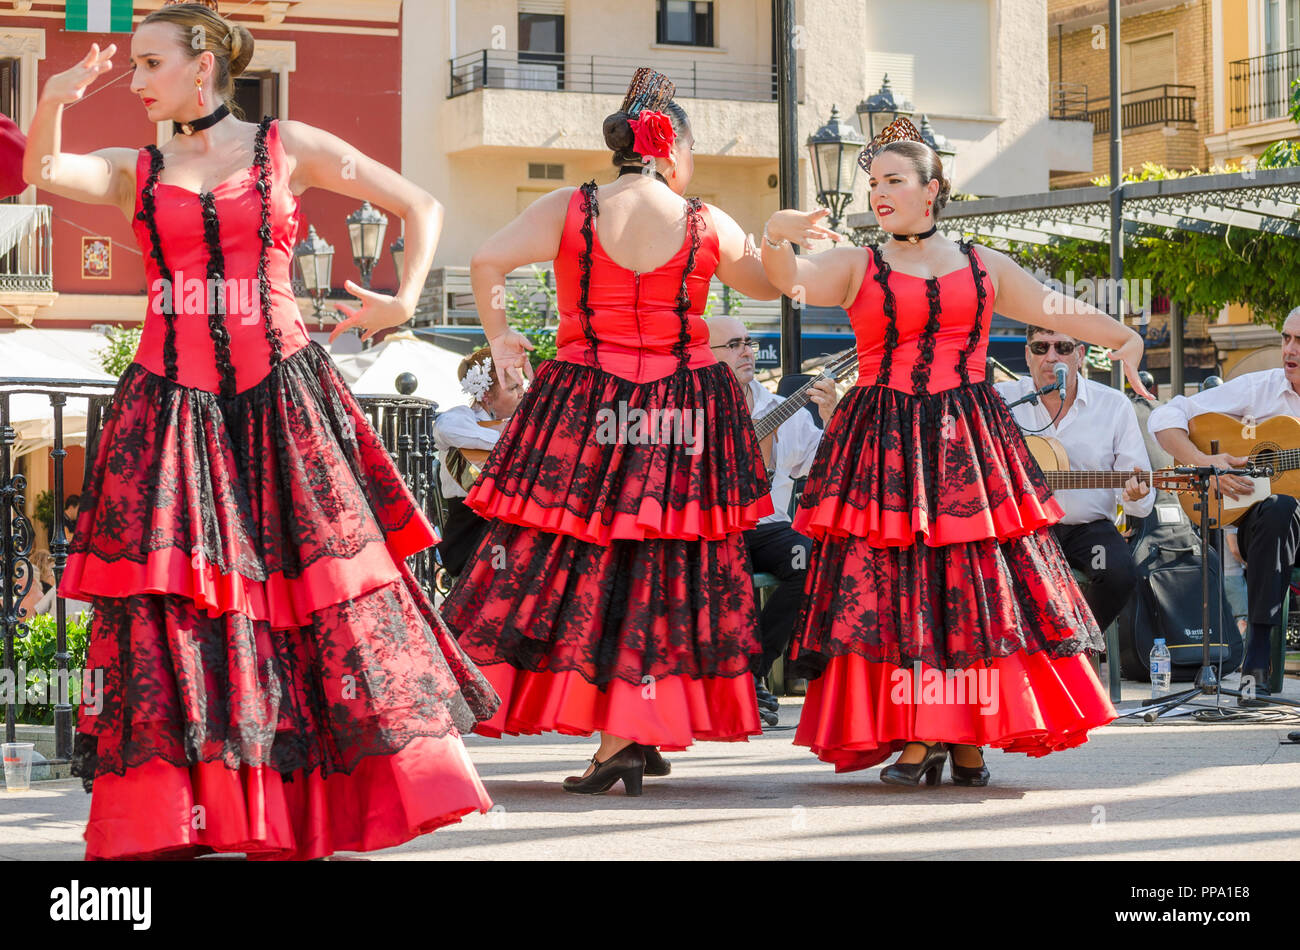 Flamenco dancers, performance, Fandango, Fuengirola a caballo. Annual event, celebration, event, Málaga, Andalusia, Spain. September 2018 - Stock Image